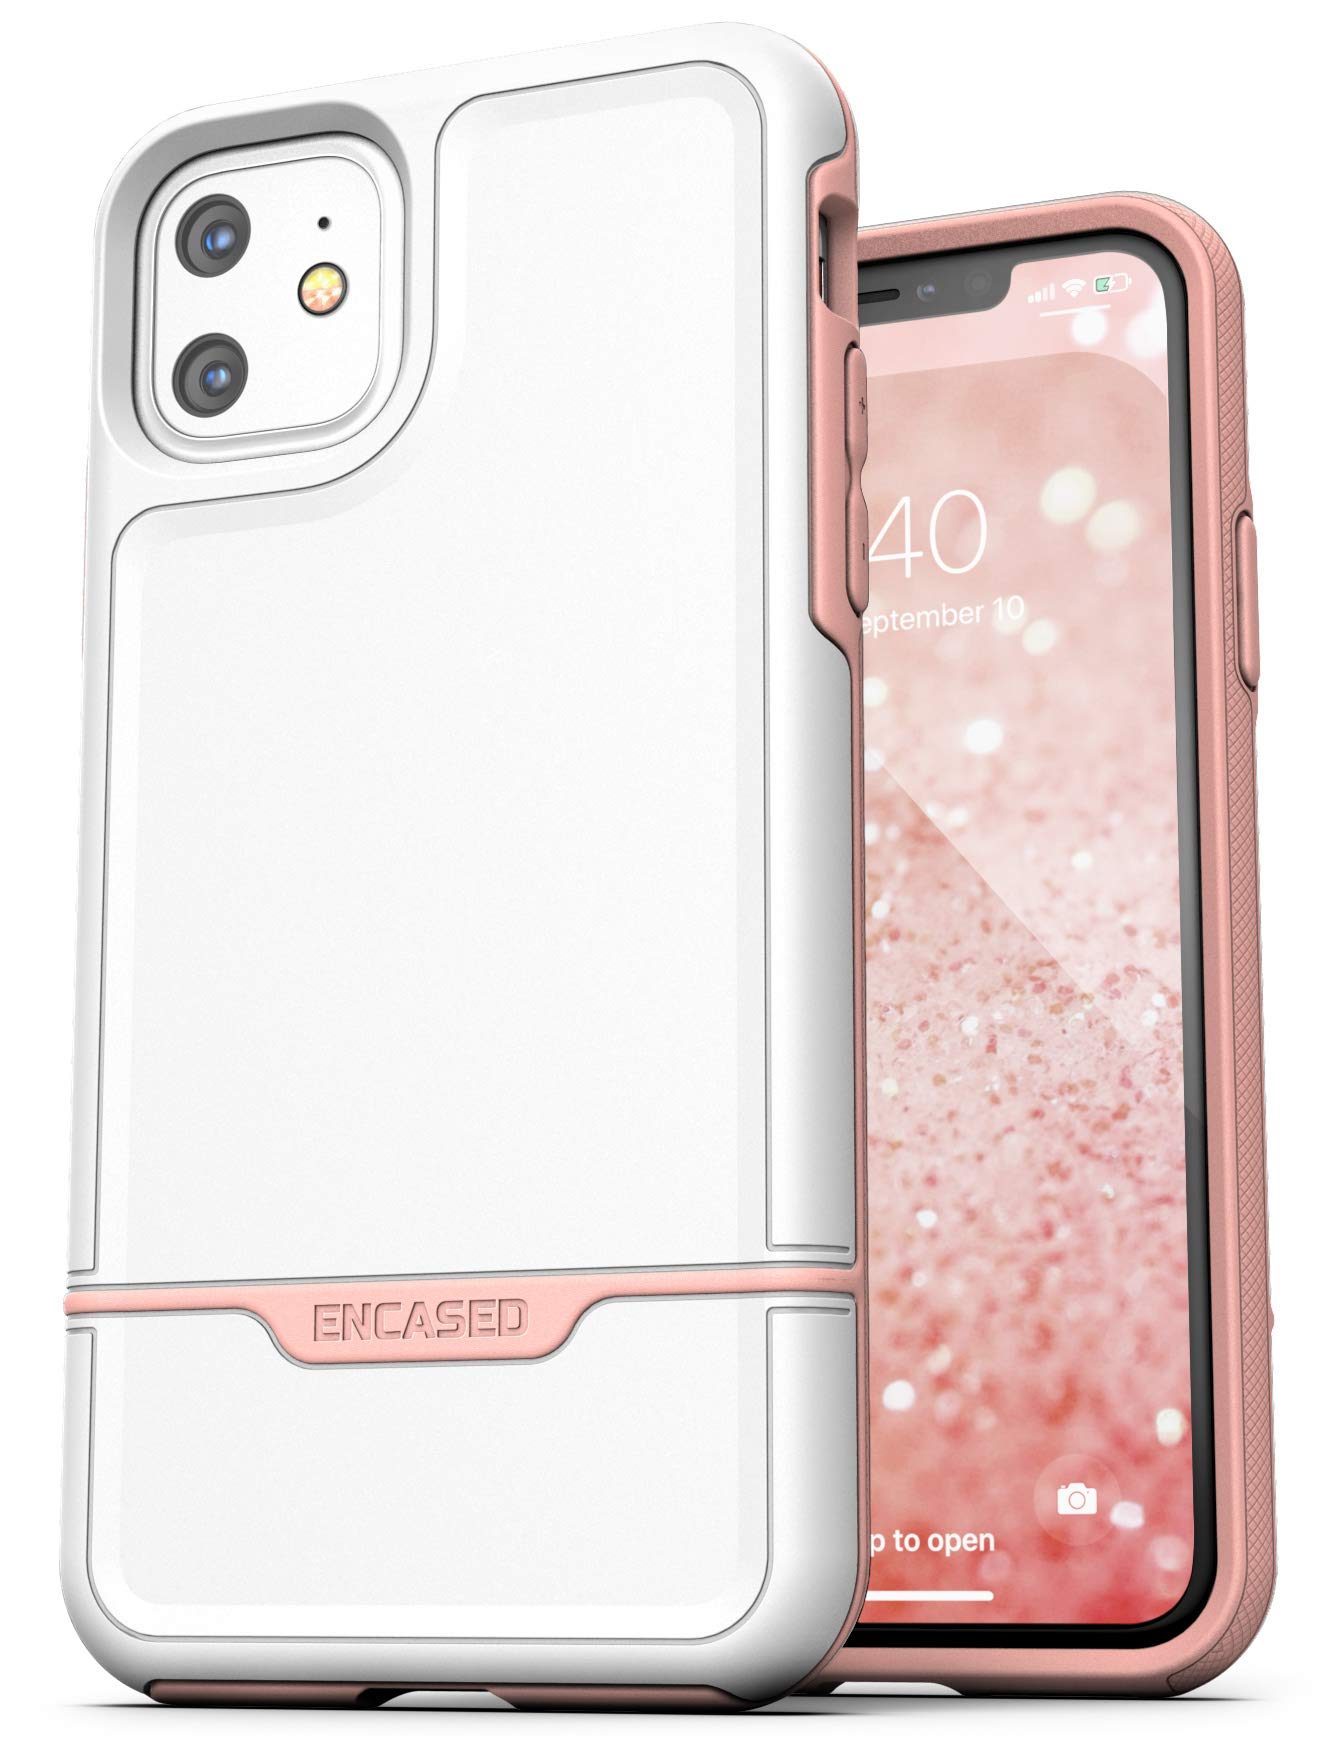 Encased Heavy Duty iPhone 11 Protective Case Pink (2019 Rebel Armor) Military Grade Full Body Rugged Cover